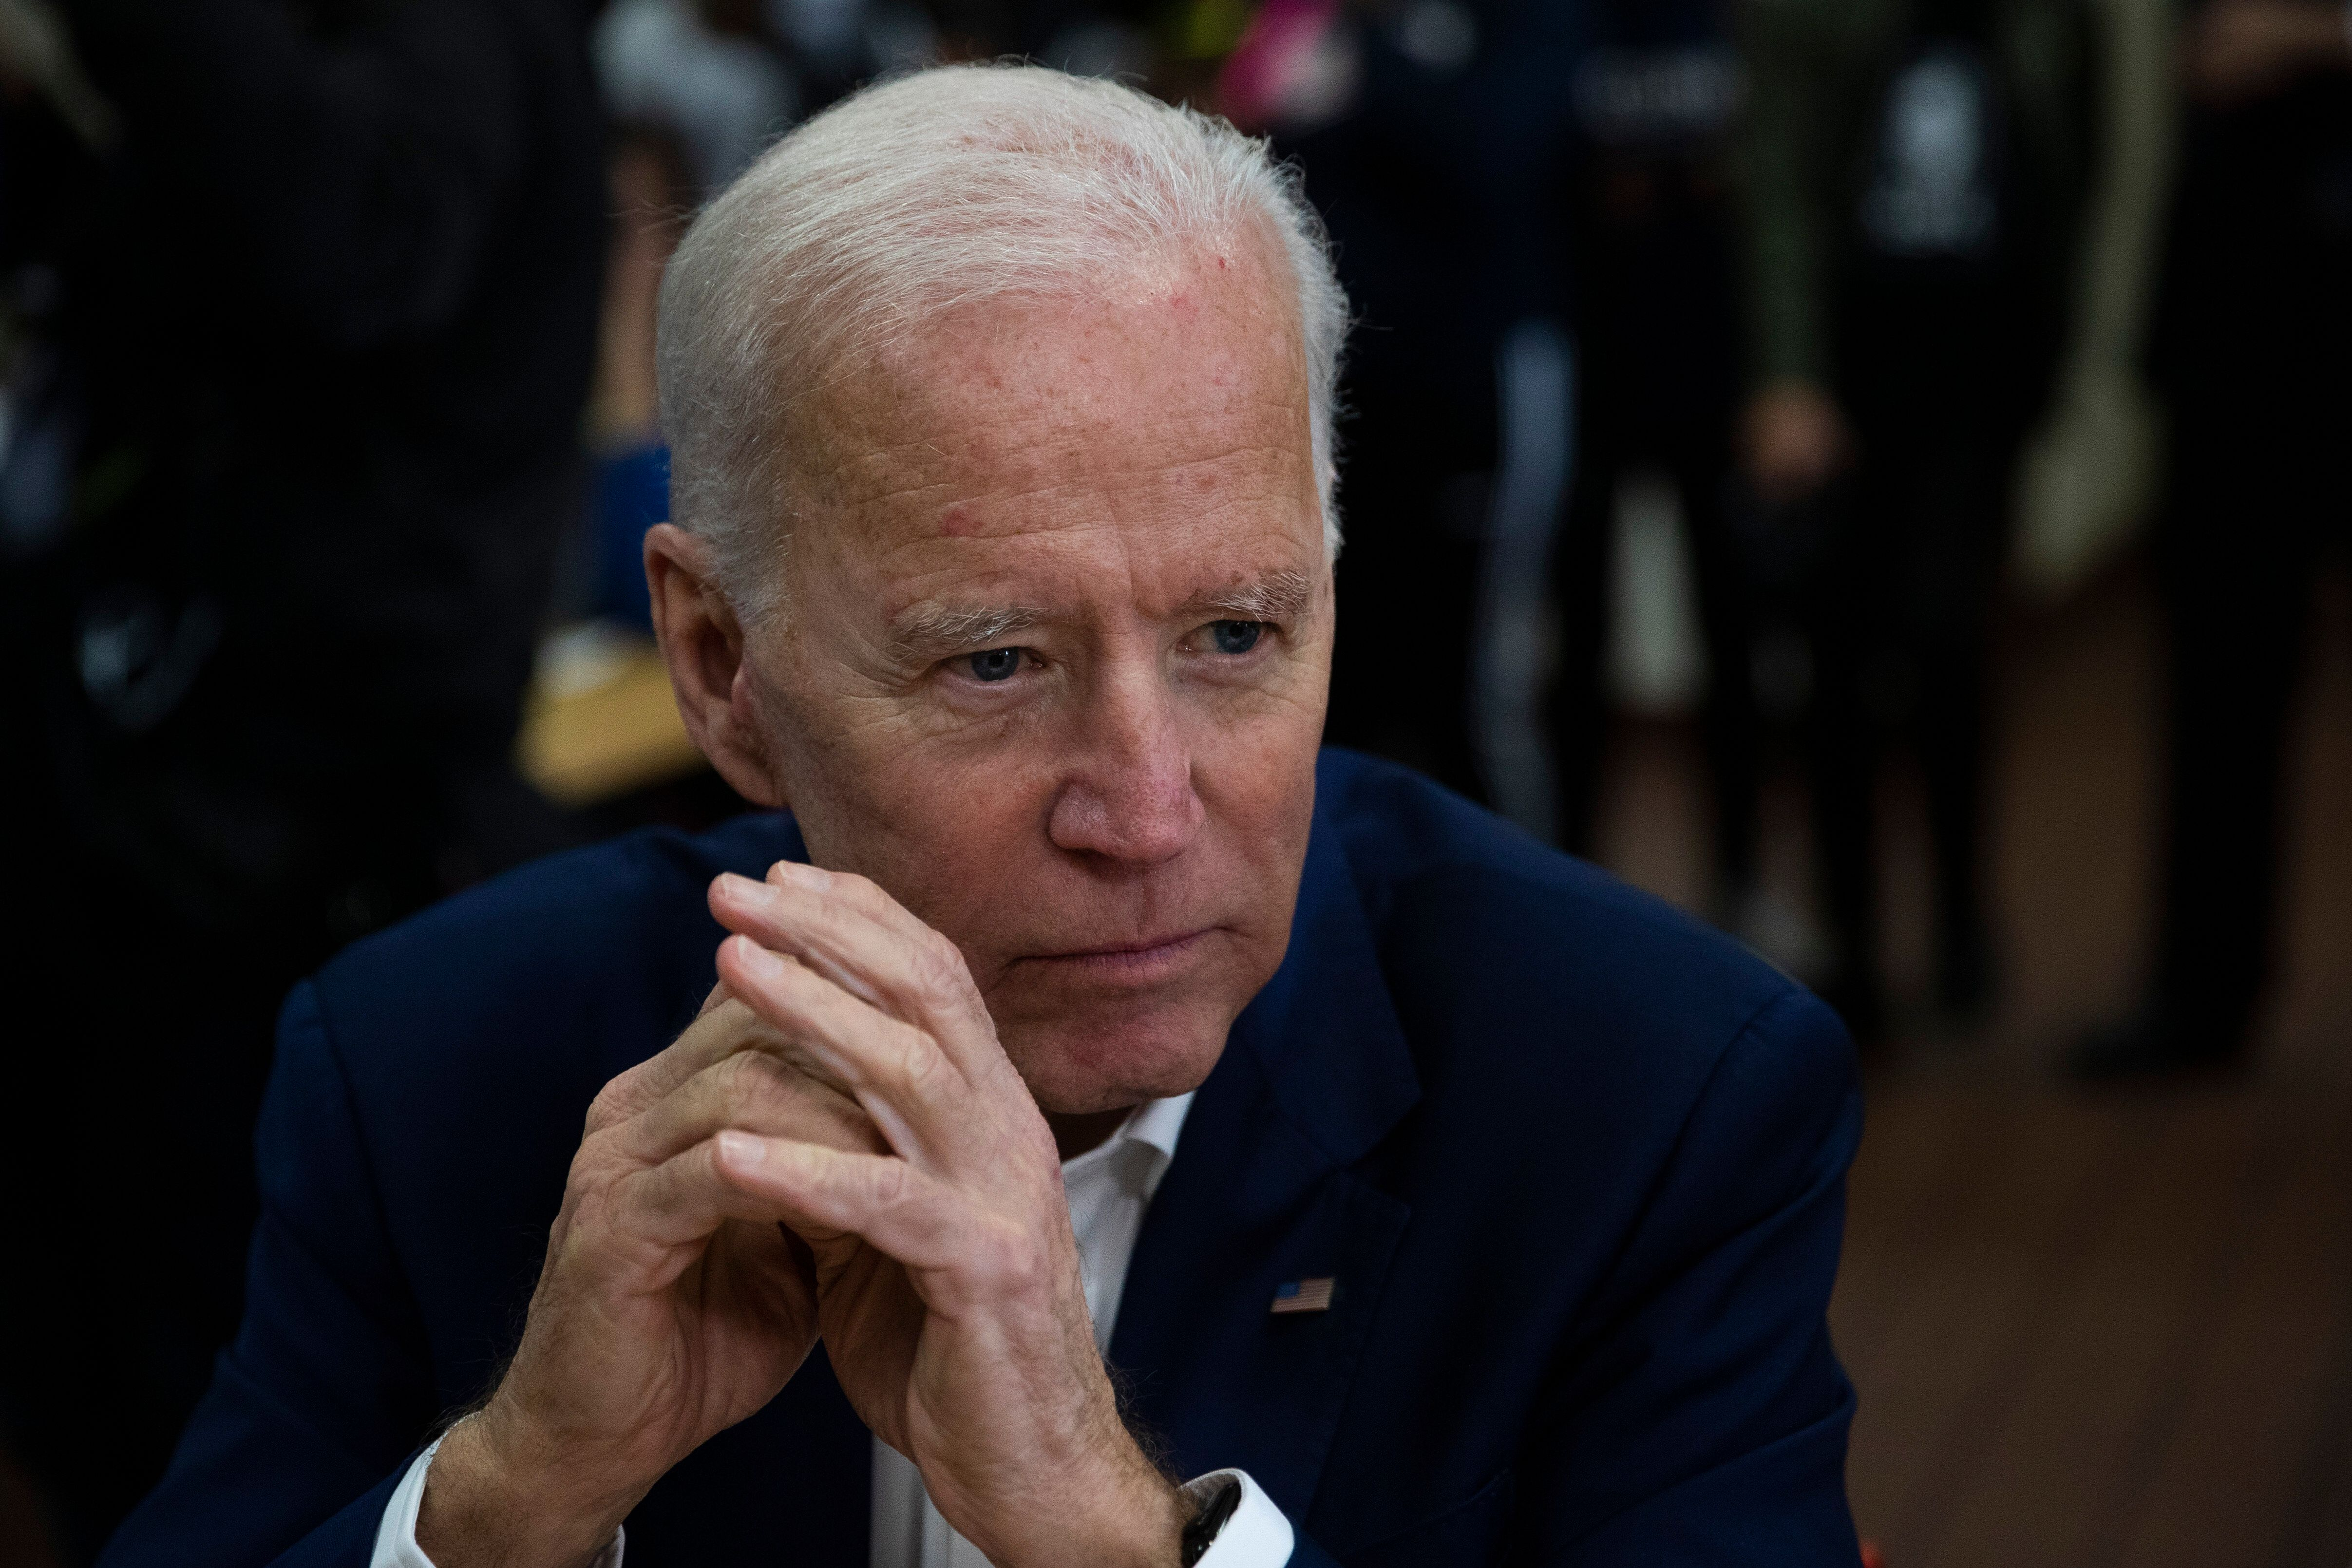 Former Vice President Joe Biden listens to voter in Los Angeles on Wednesday. The vice president is reportedly preparing a cl